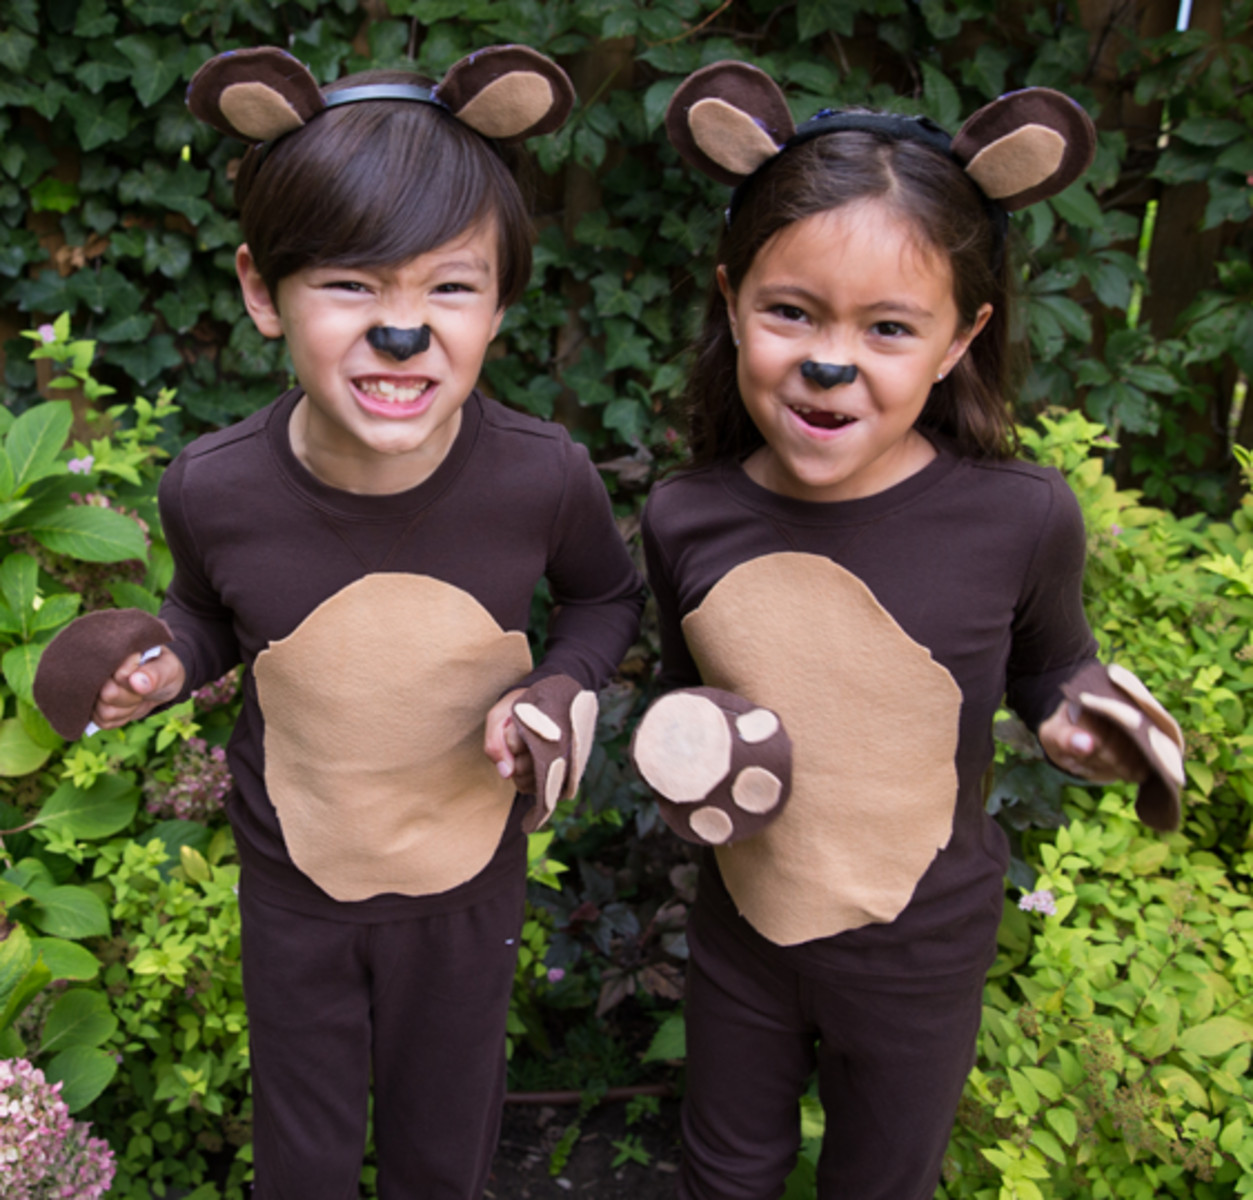 Best ideas about DIY Teddy Bear Costume . Save or Pin Recreate this easy DIY kids bear costume by starting with Now.